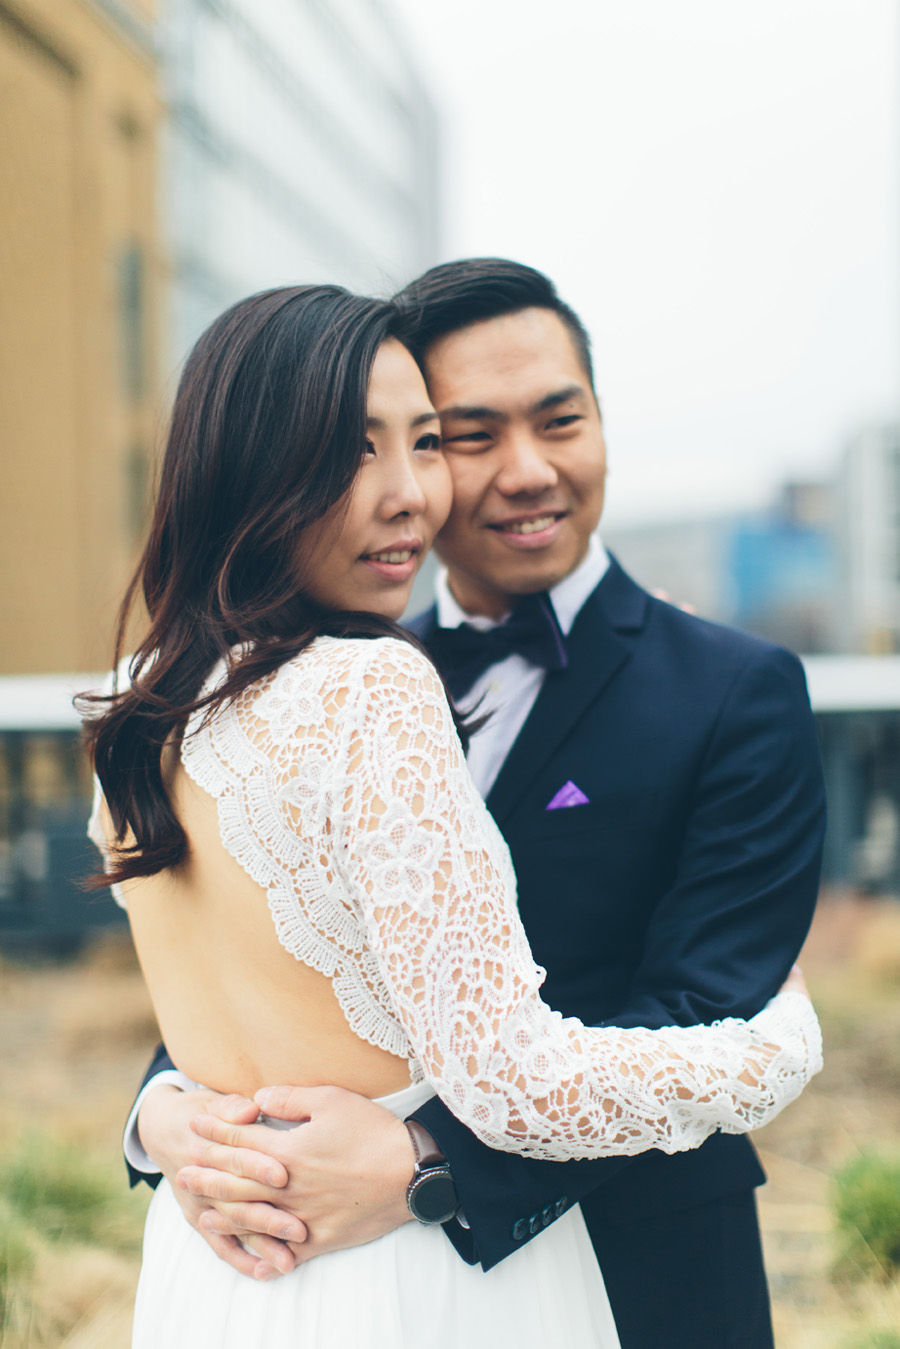 kate-thomas-nyc-highline-chelsea-engagement-photography-session-cynthiachung-0022.jpg